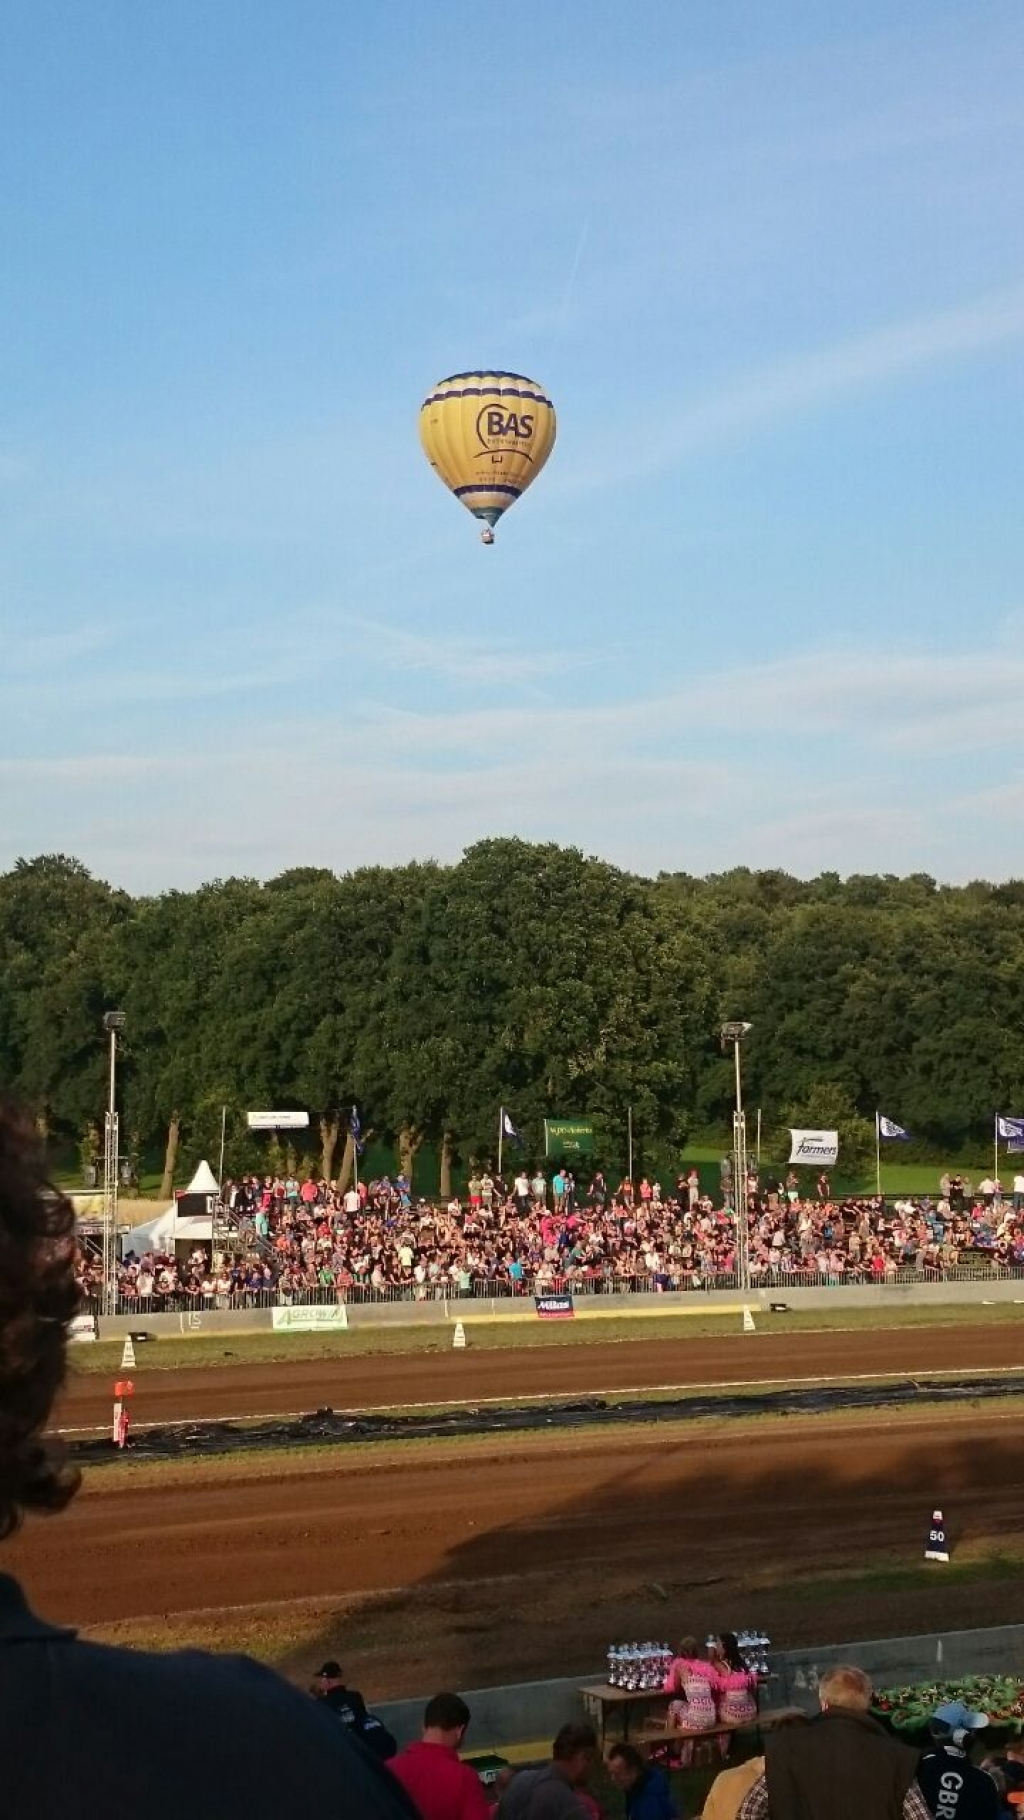 Prive ballonvaart over de Tractorpulling in Lochem